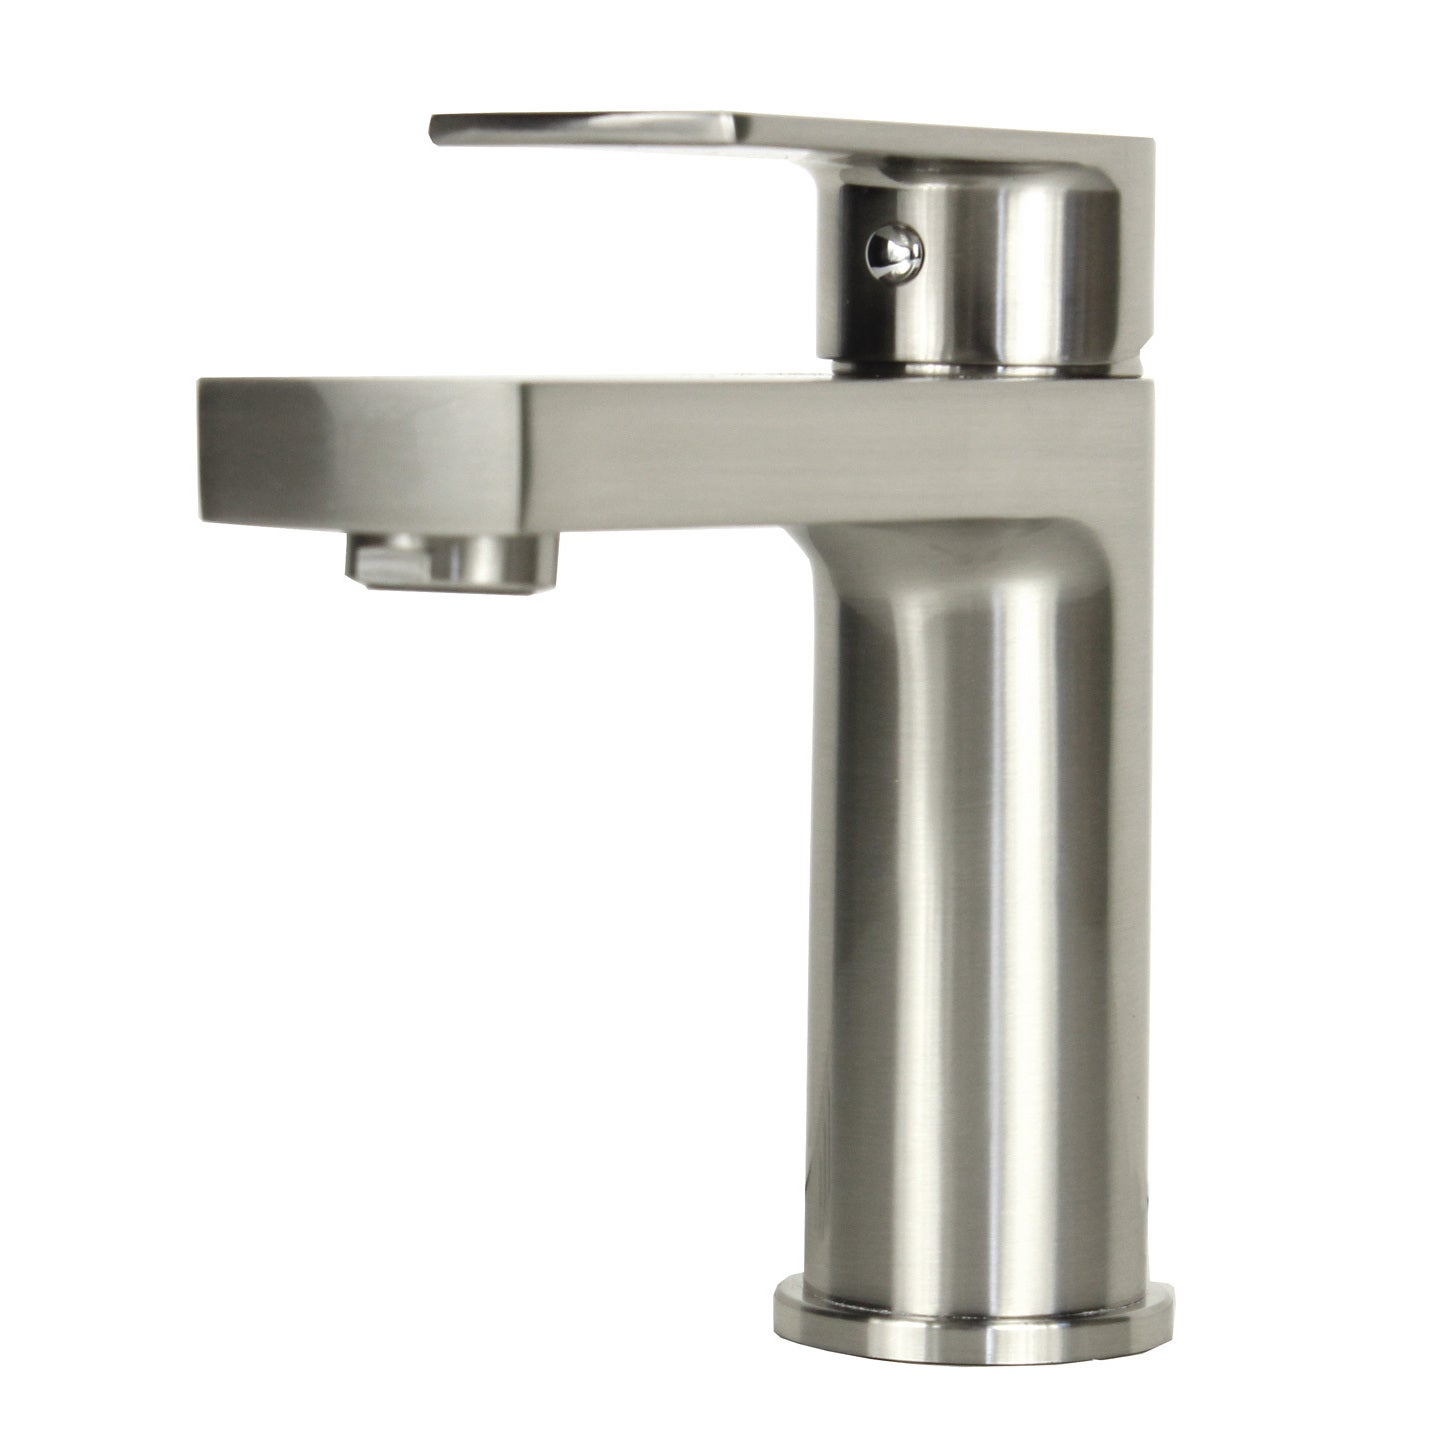 Shop Anna Style Brushed Nickel Stainless Steel Lavatory Faucet On - Brushed stainless steel bathroom faucet